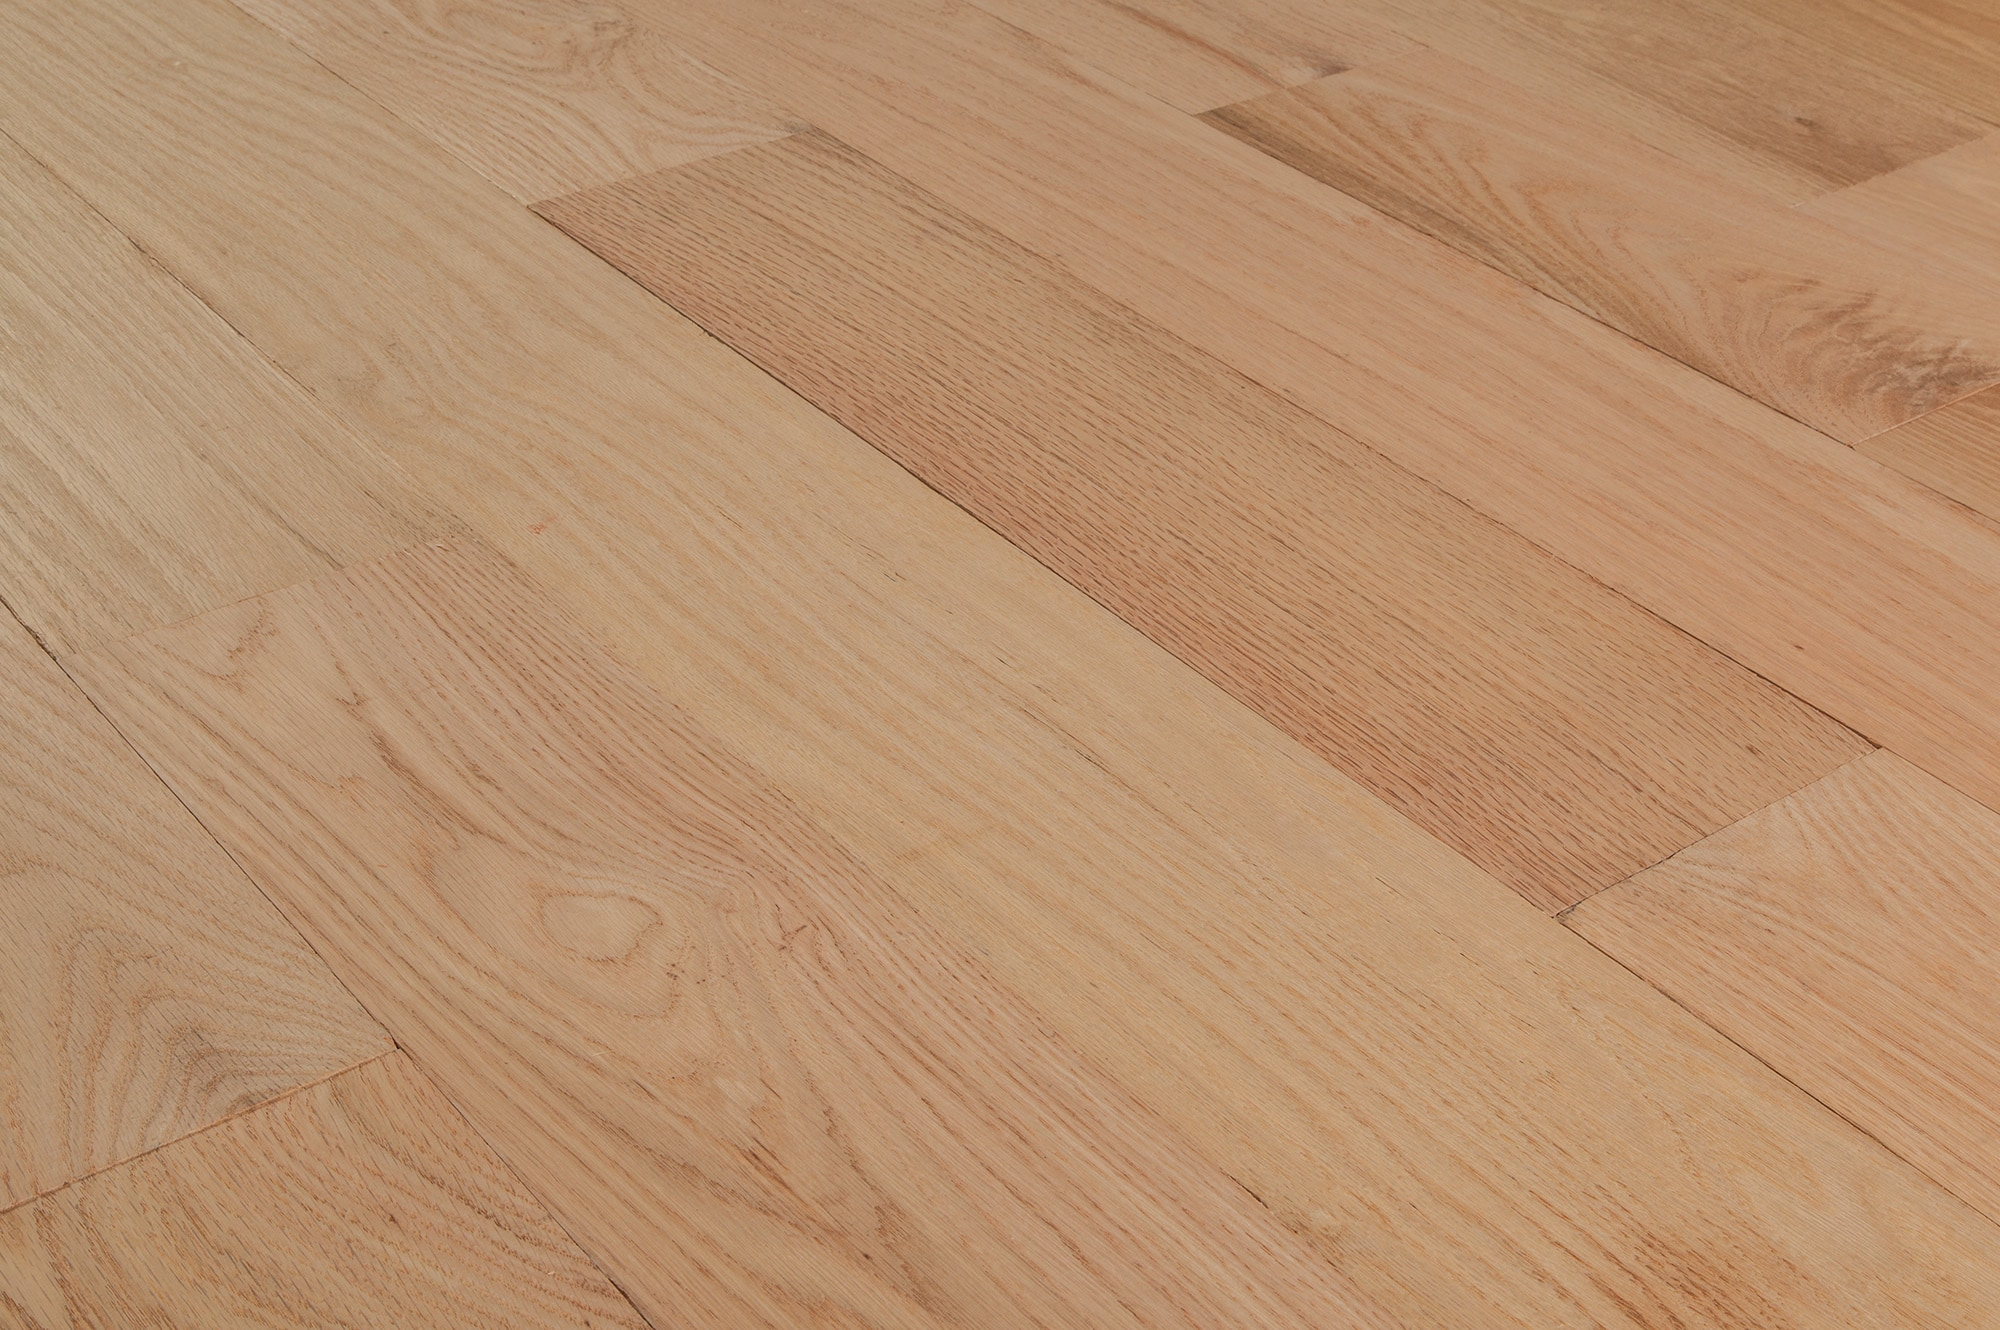 Unfinished red oak flooring unfinished oak hardwood for Red oak hardwood flooring